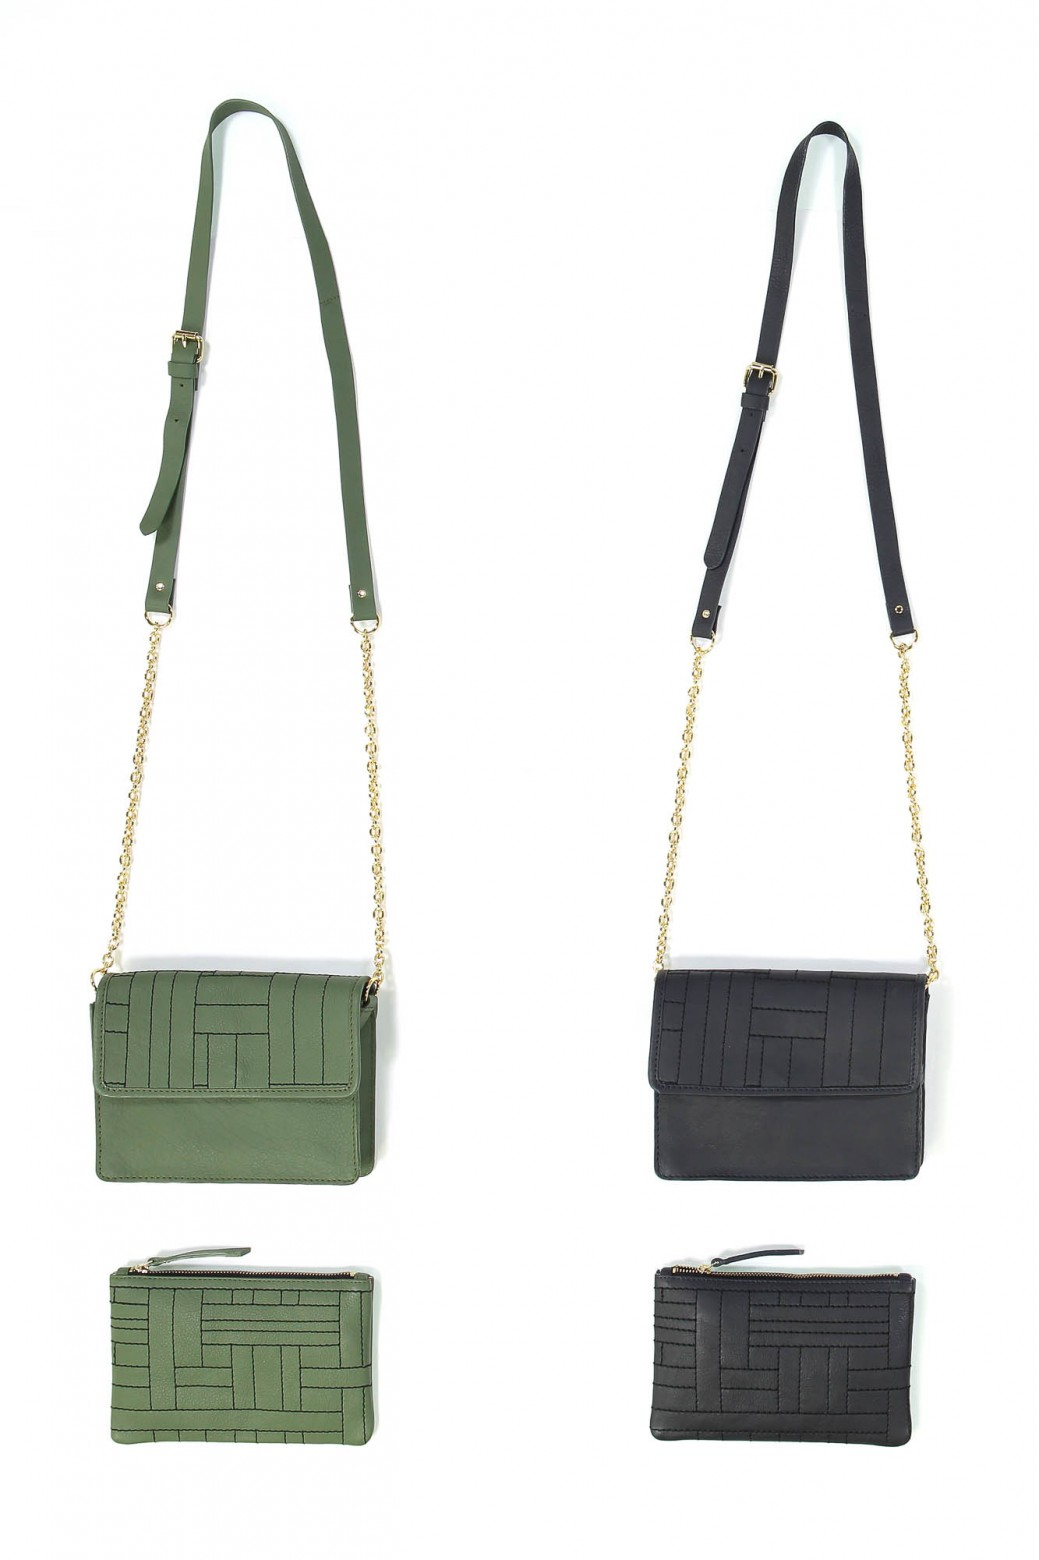 POUCH ICONE MARINE